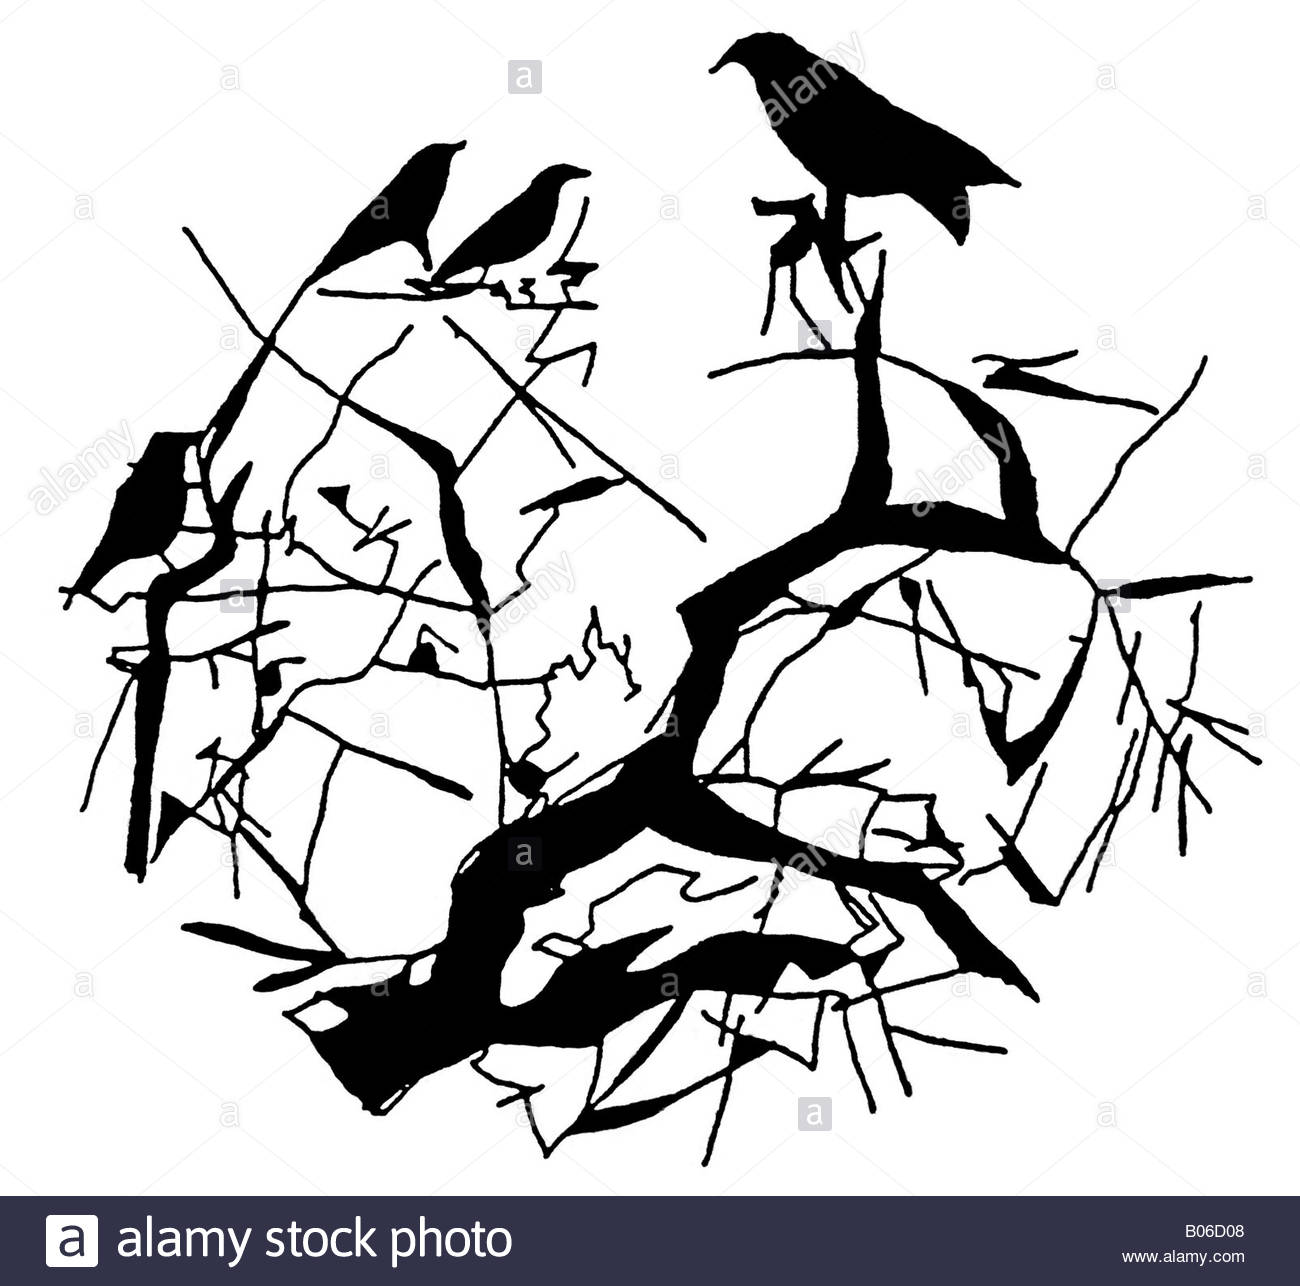 Tree Bird Silhouette at GetDrawings.com | Free for personal use Tree ...